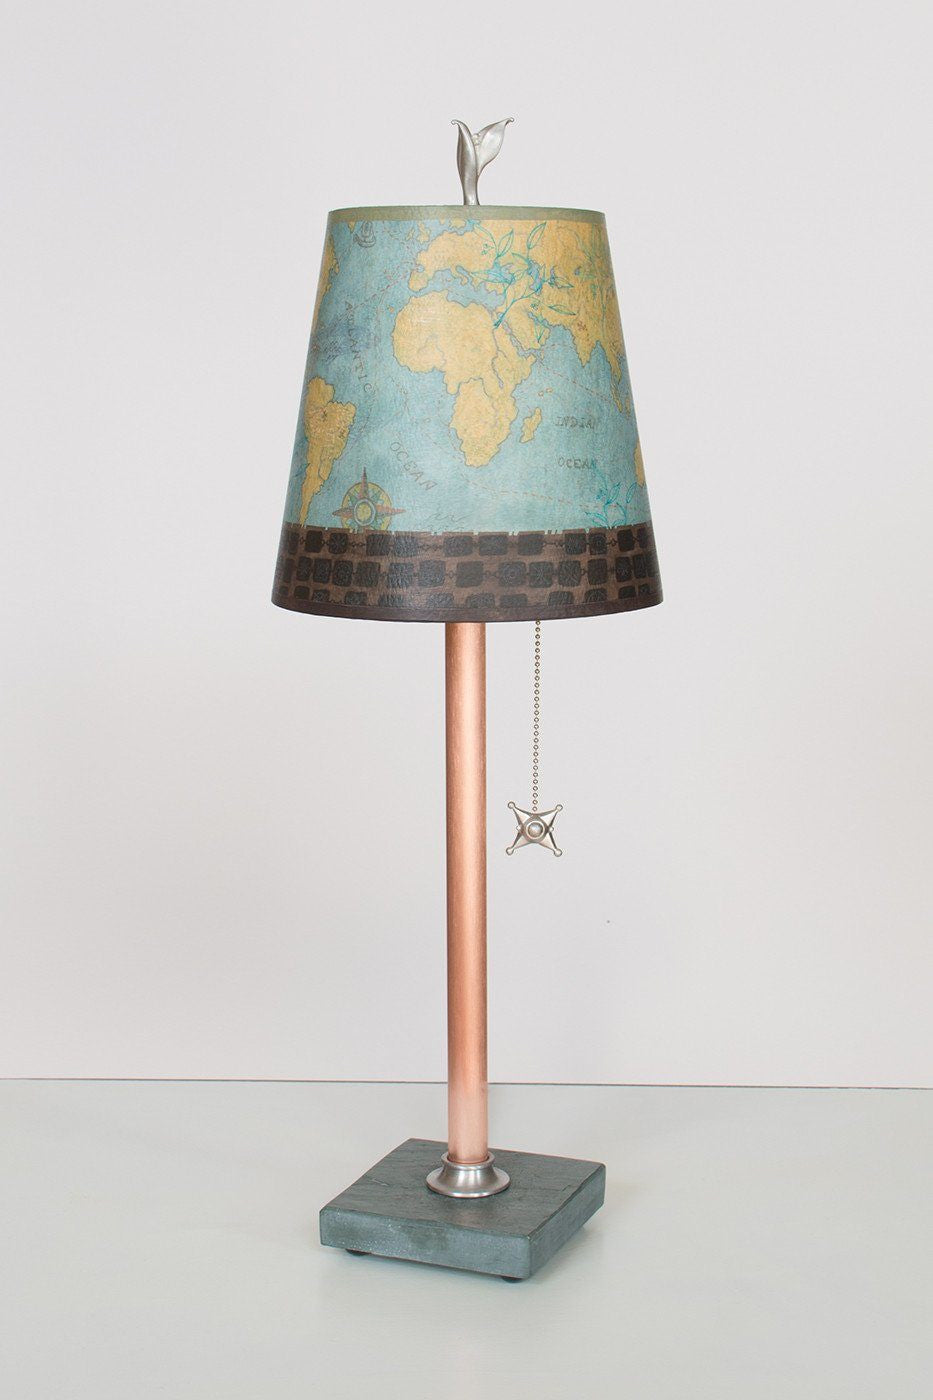 Copper Table Lamp on Vermont Slate Base with Small Drum Shade in Map Lit